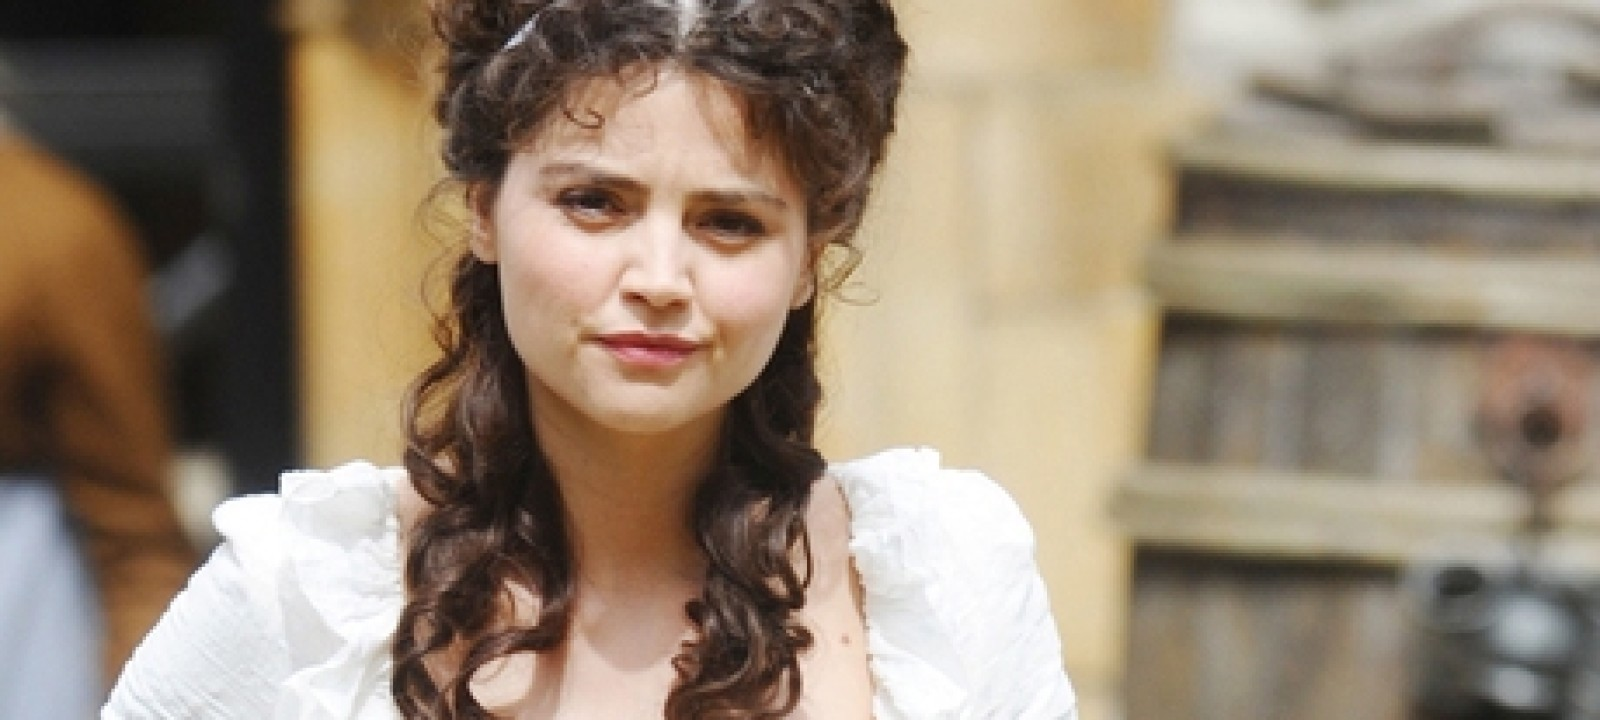 Jenna-Louise Coleman on the set of 'Death Comes To Pemberley' (Photo: WENN)